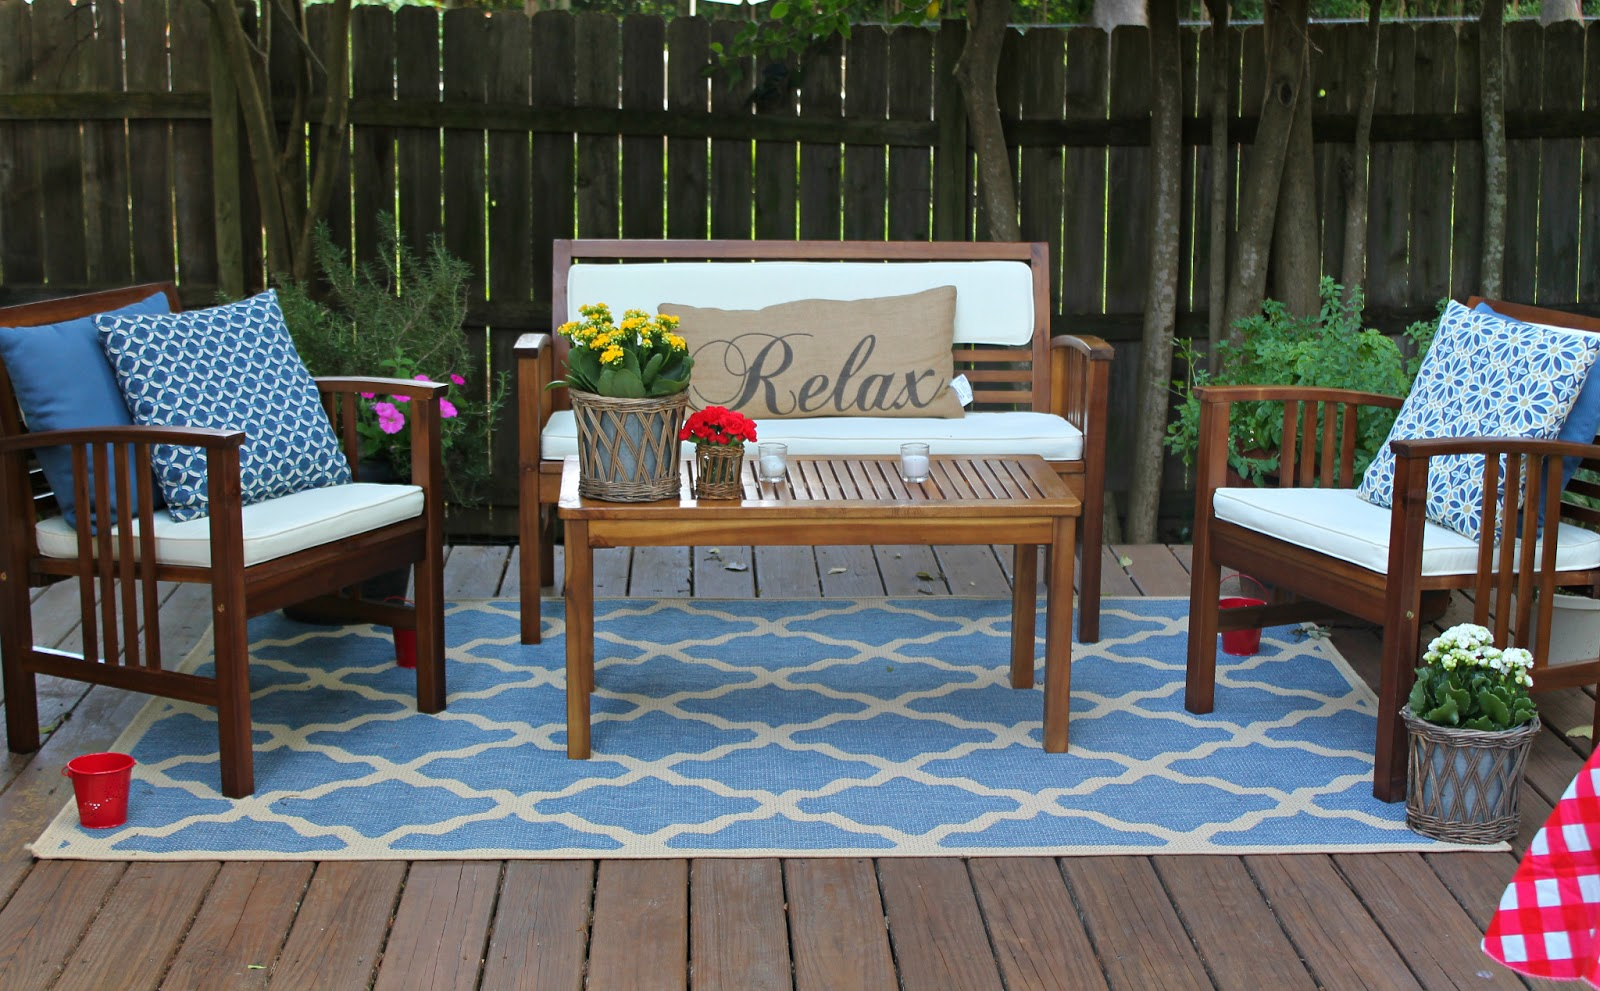 Deck Furniture Ideas Fresh Blue Deck Furniture Design Ideas For Relaxing Outdoor Rooms